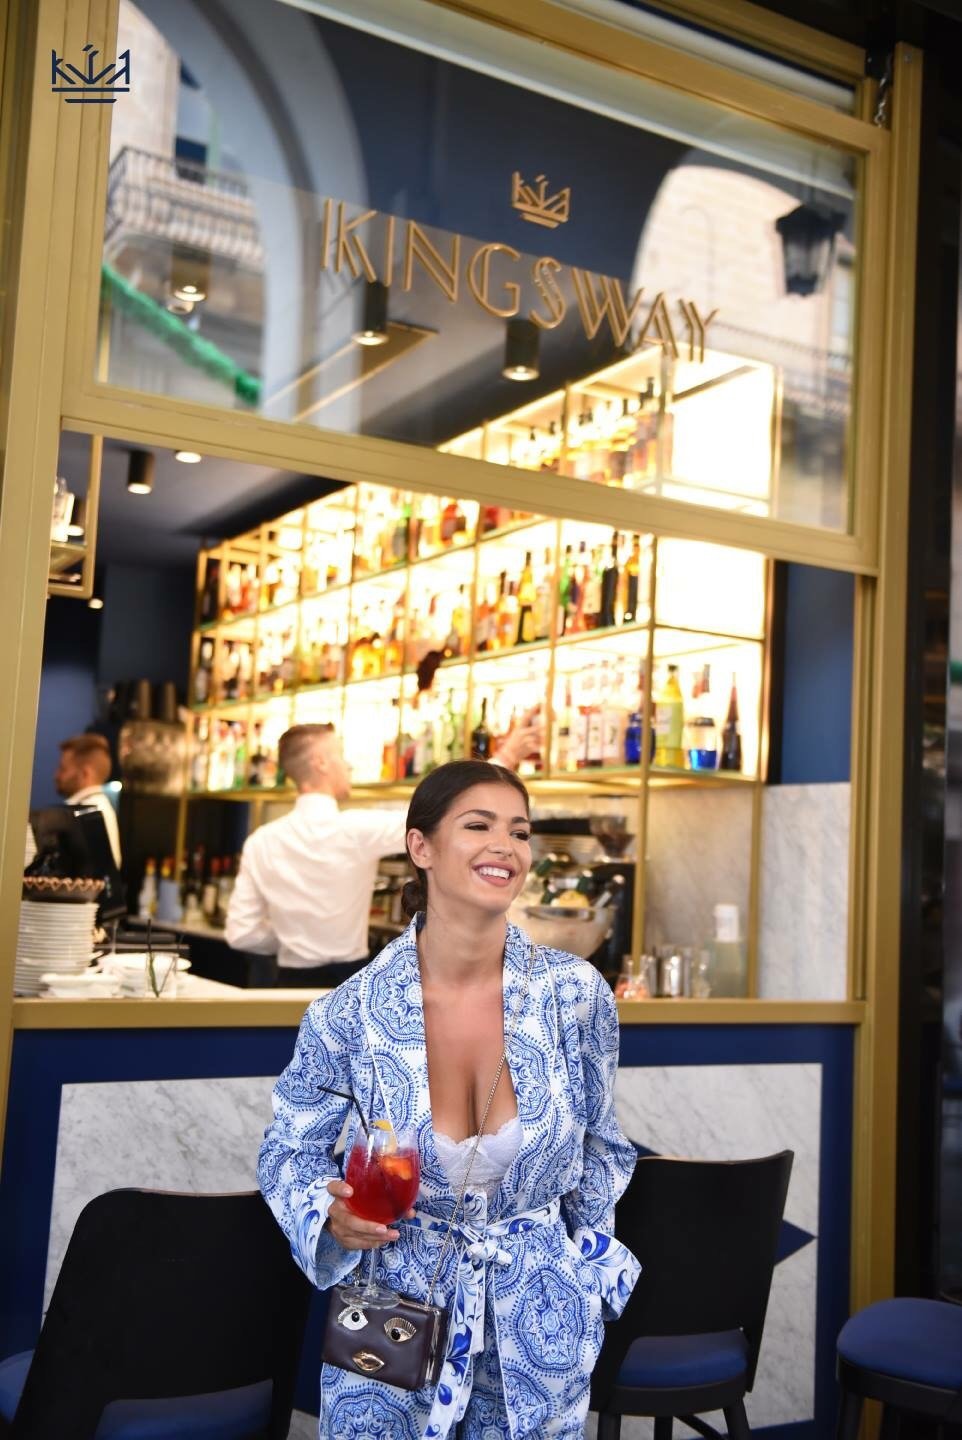 Romea Adler, lifestyle blogger malta, kingsway, cafe malta top 5 places to go in malta.JPG